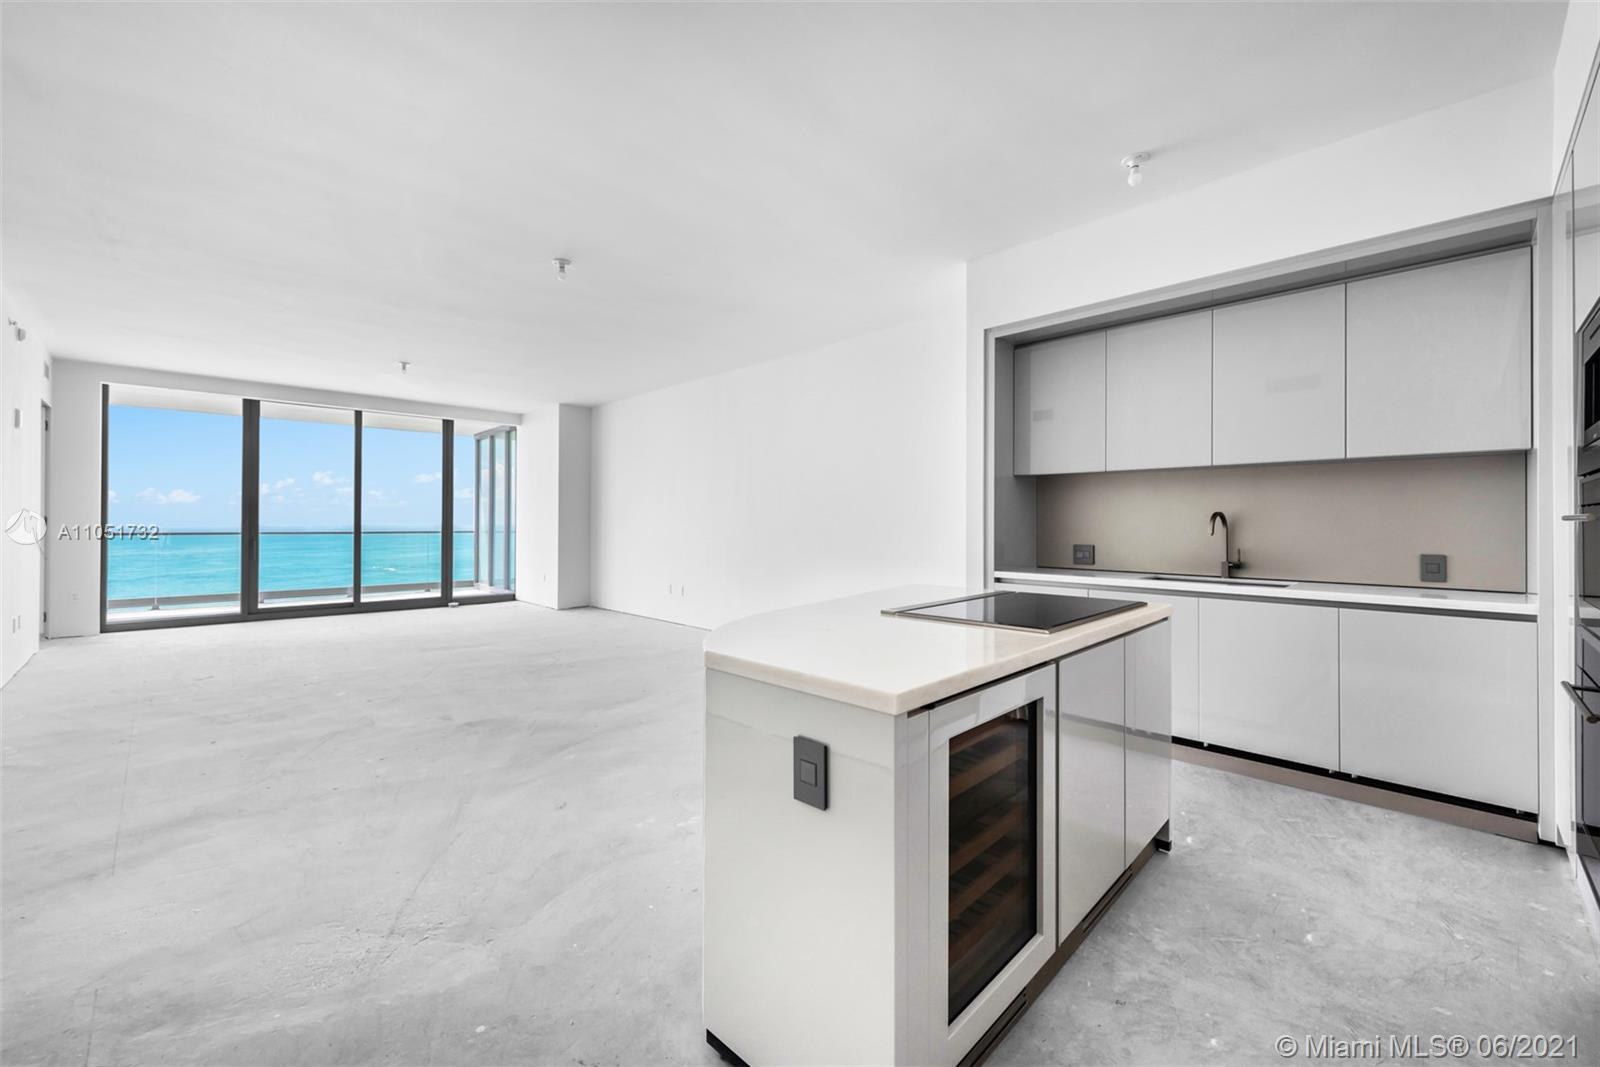 BEST DEAL ON THE BEACH. 4 BEDROOMS RESIDENCE IN NEW BUILDING FACING THE OCEAN. DESIGNER READY TO INSTALL ANY TYPE OF FLOORS DESIRED. FULLY EQUIPPED WITH HIGHEST QUALITY OF APPLIANCES IN KITCHEN, BATHROOMS FINISHED WITH BEAUTIFUL STONES ALL DESIGNED BY GIORGIO ARMANI HIMSELF. MASTER INCLUDES A WETBAR AND IMMENSE WALK IN CLOSET. INCLUDES SERVICES QUARTER/ CAN BE CONVERTED INTO 5TH BEDROOM.